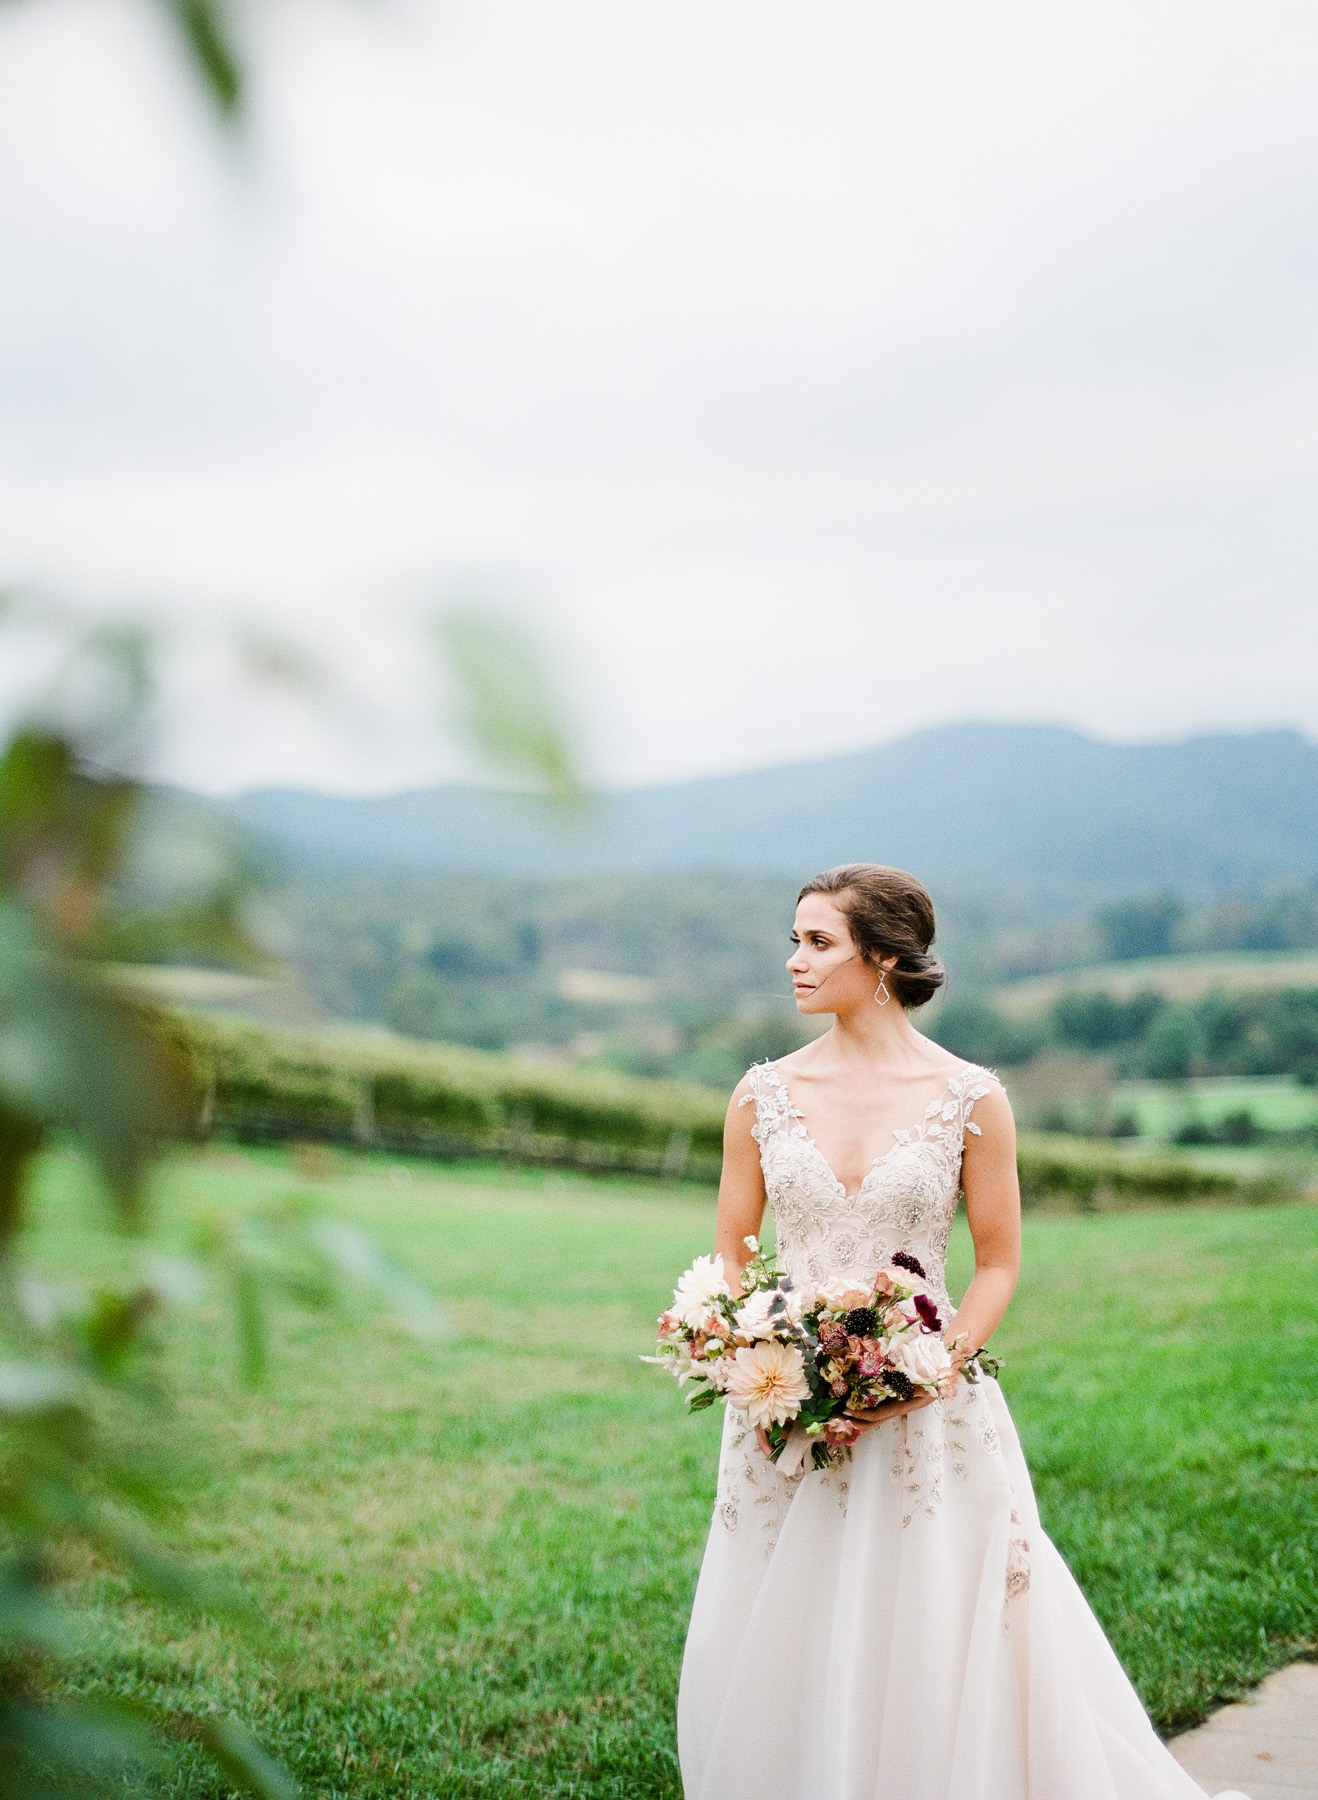 Pippin-Hill-Farm-and-Vinyards-Wedding-Film-Photography-12.jpg